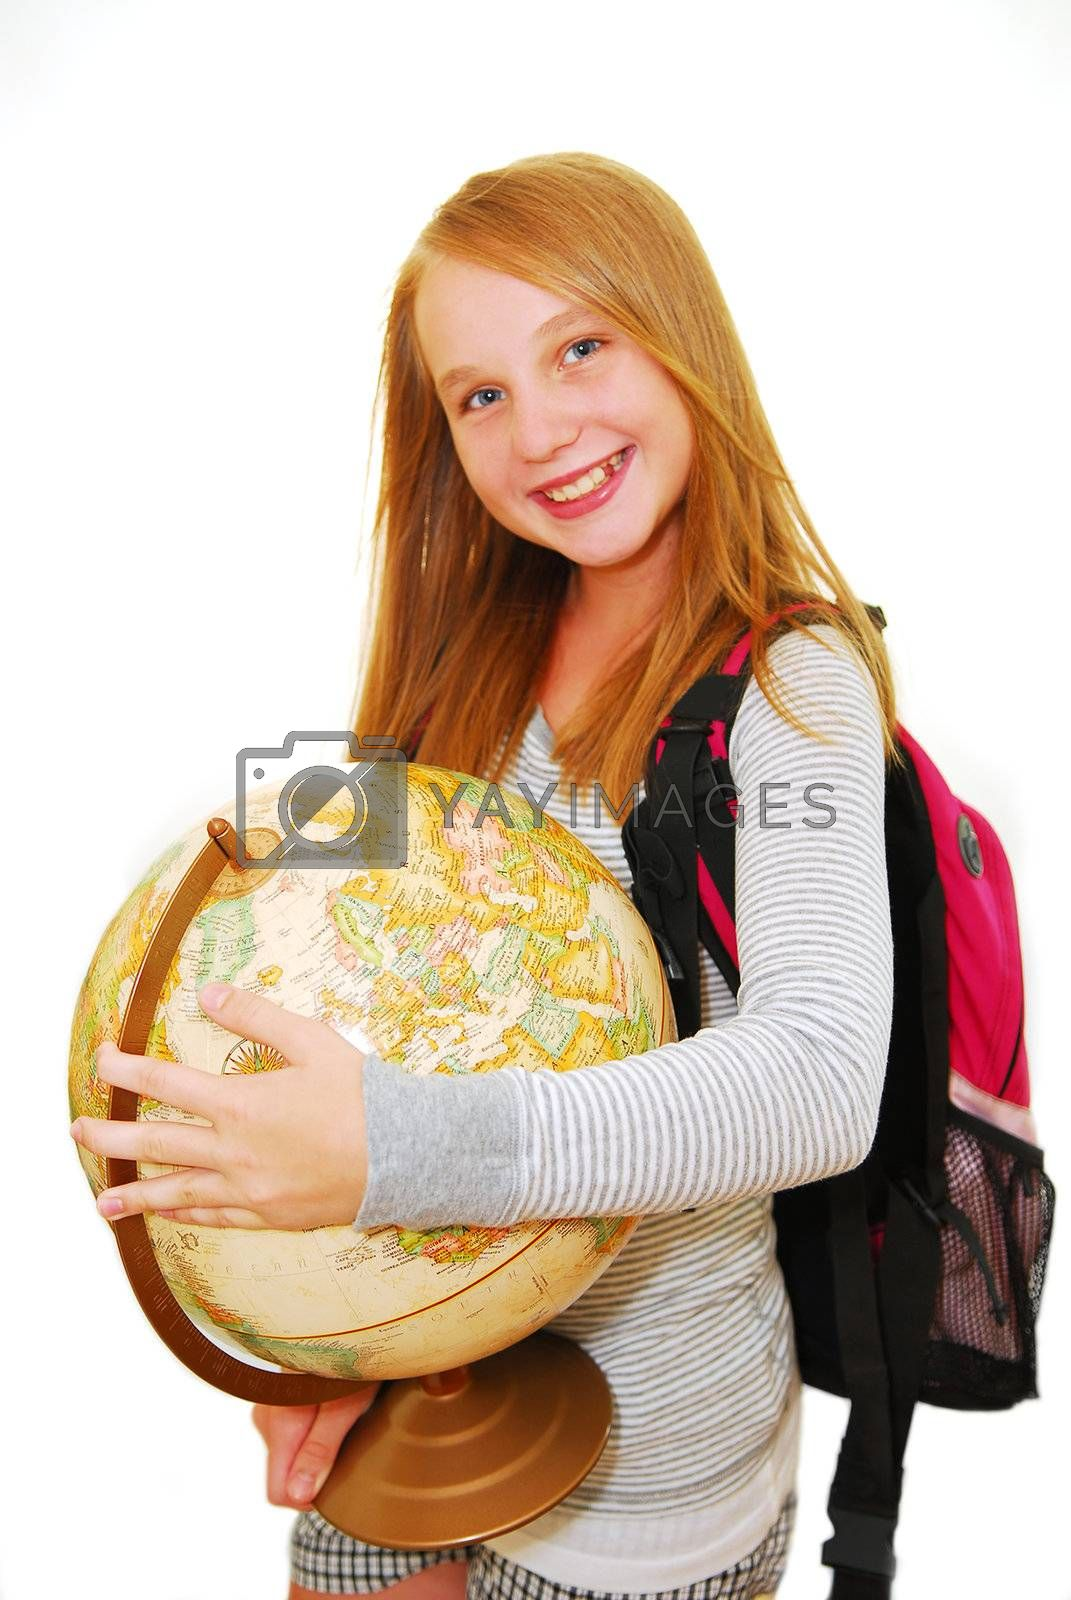 Young smiling school girl with backpack and globe isolated on white background